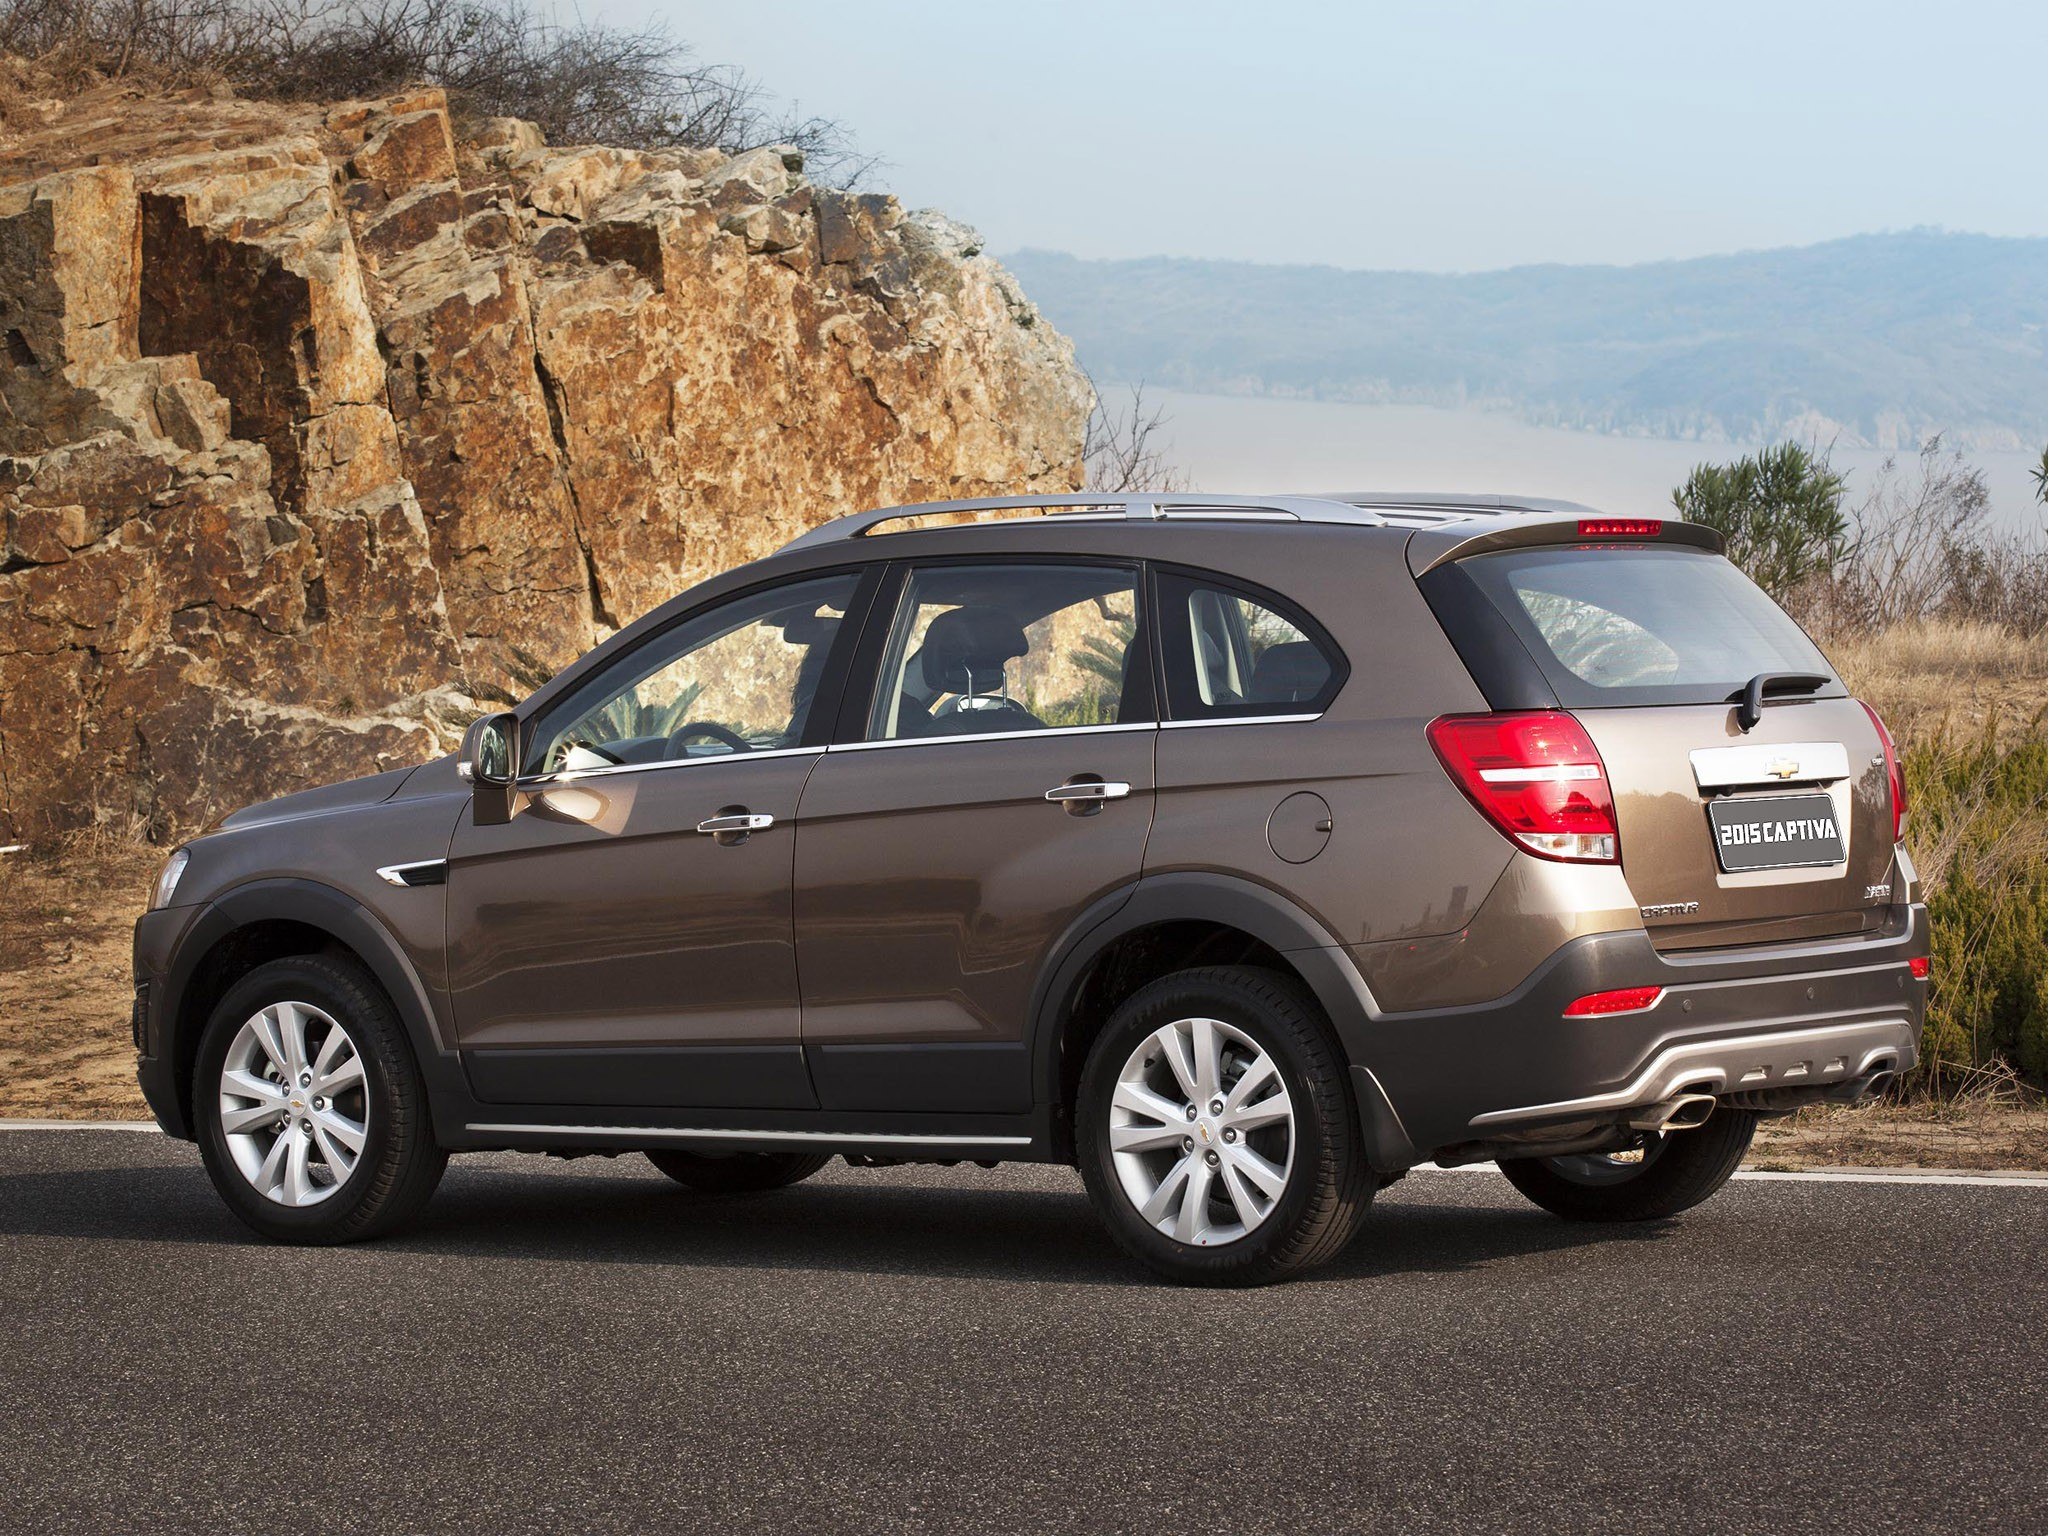 2015 Chevrolet Captiva China